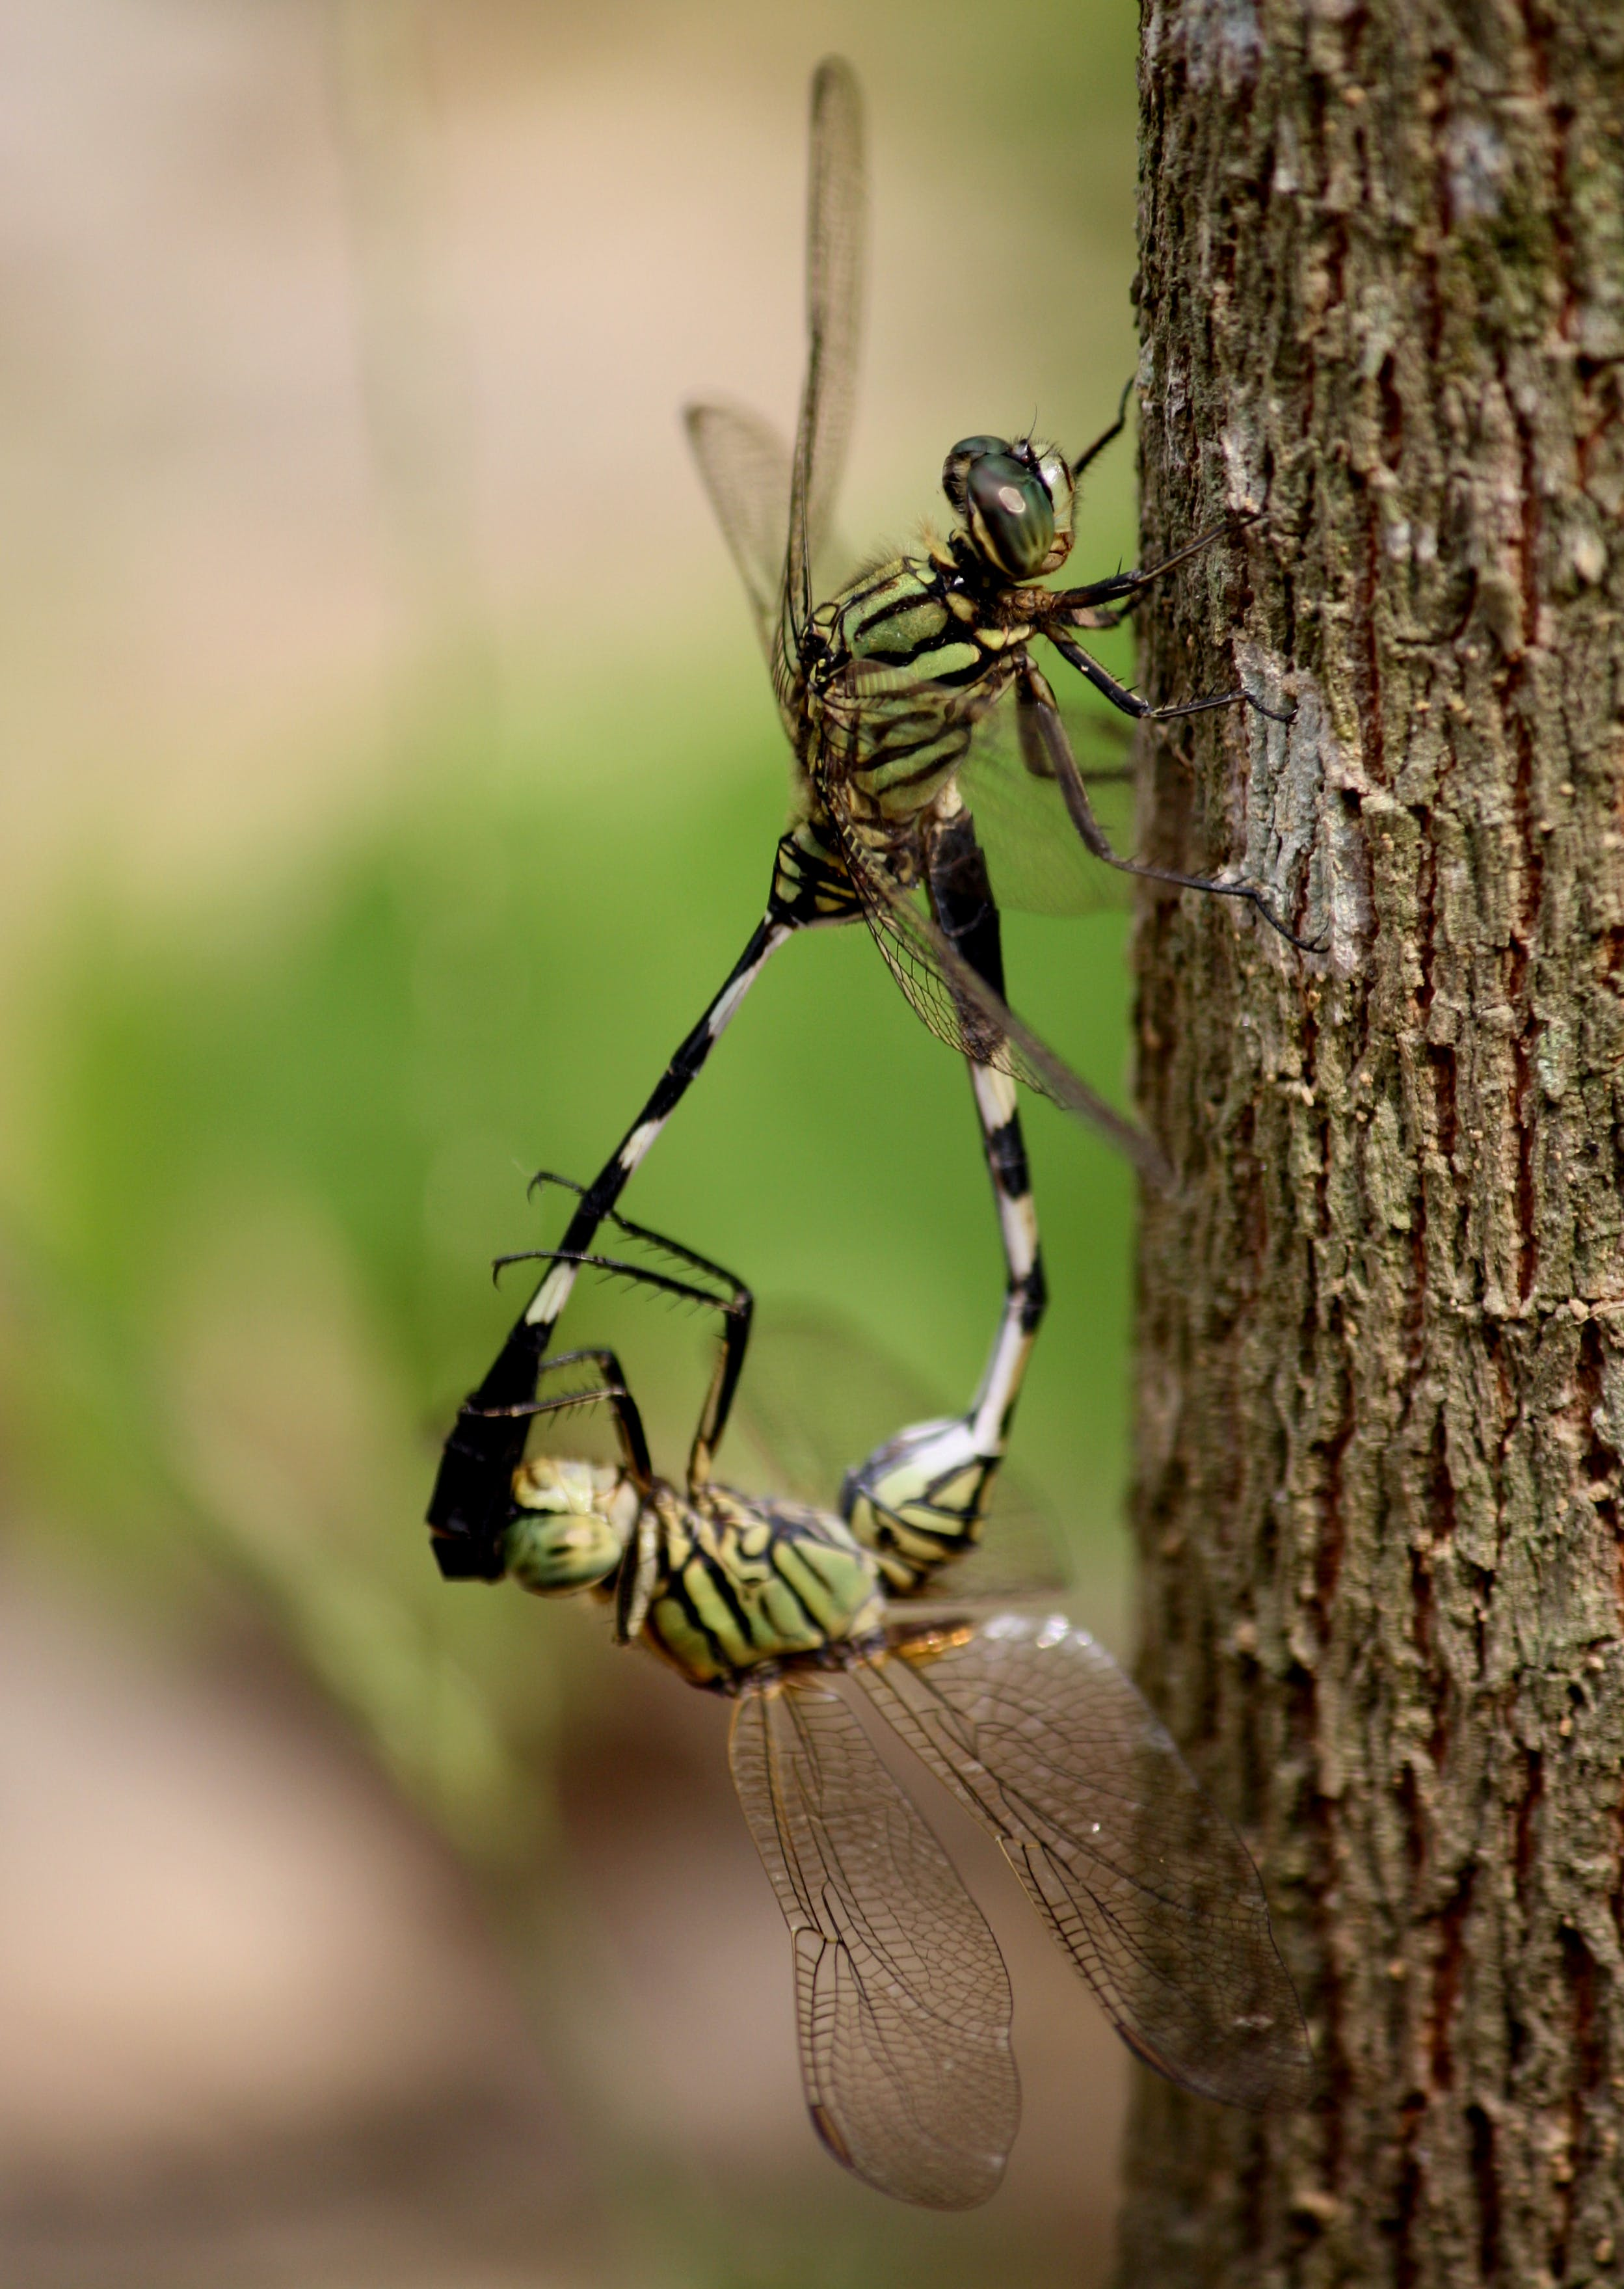 Two Green Dragonflies Mating